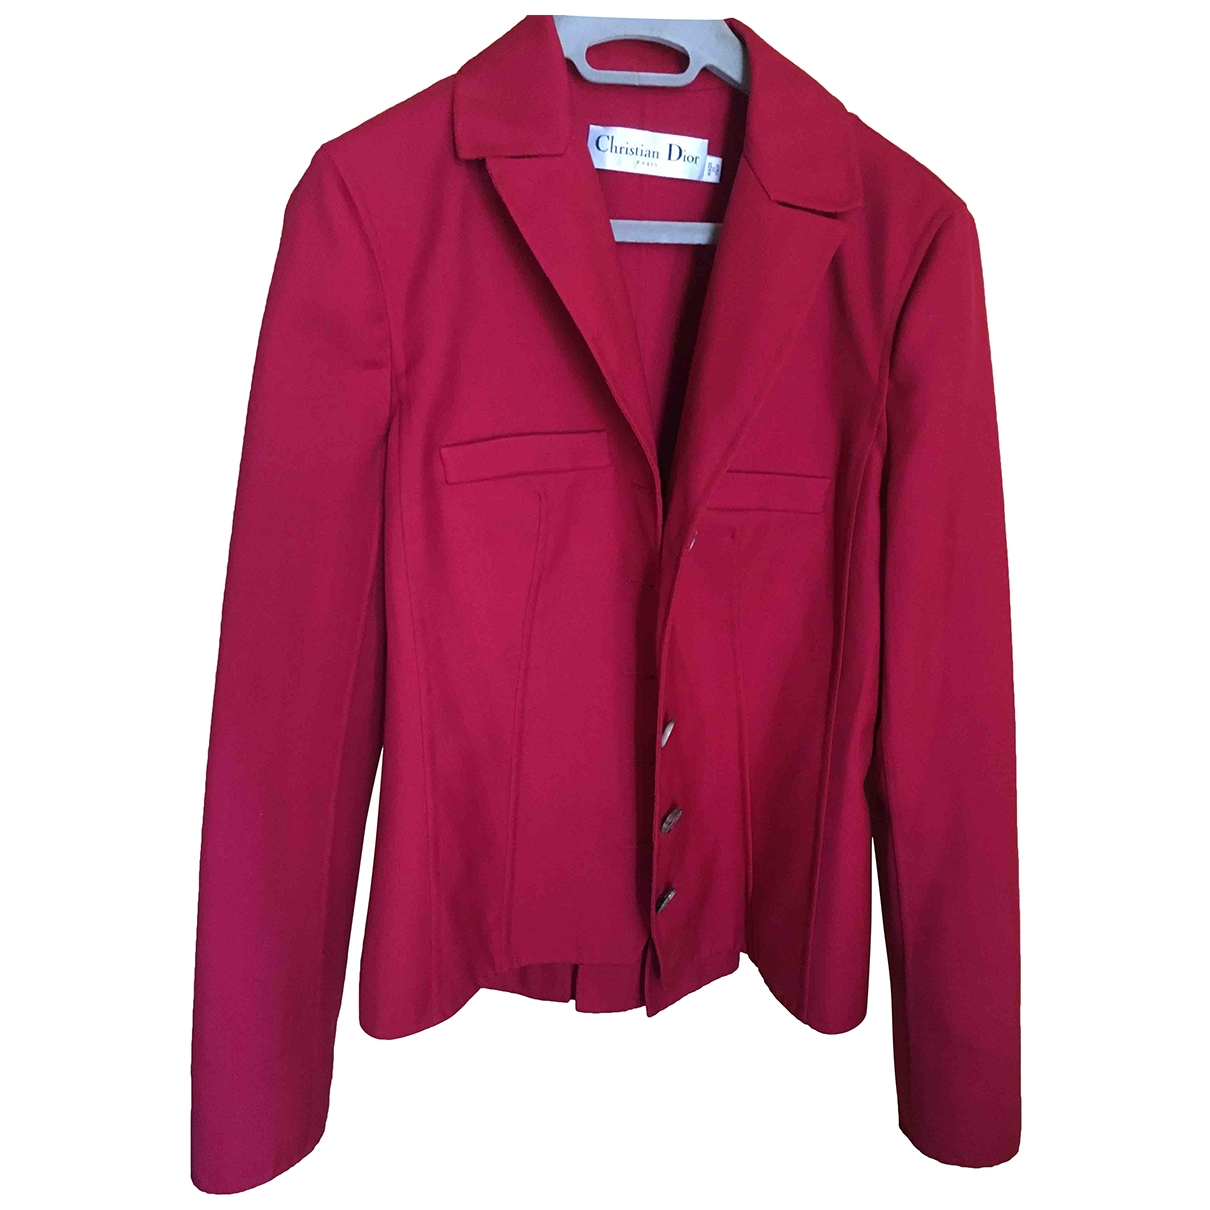 Dior \N Jacke in  Rot Wolle